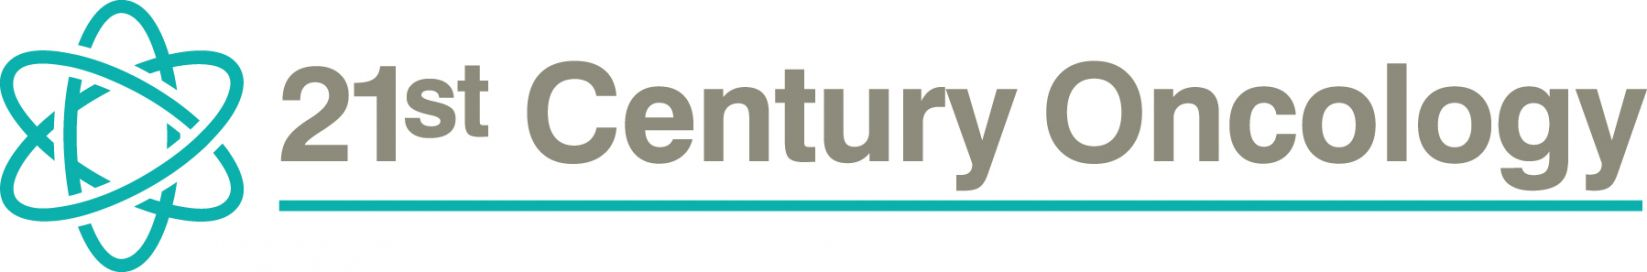 21stCenturyOncology Logo